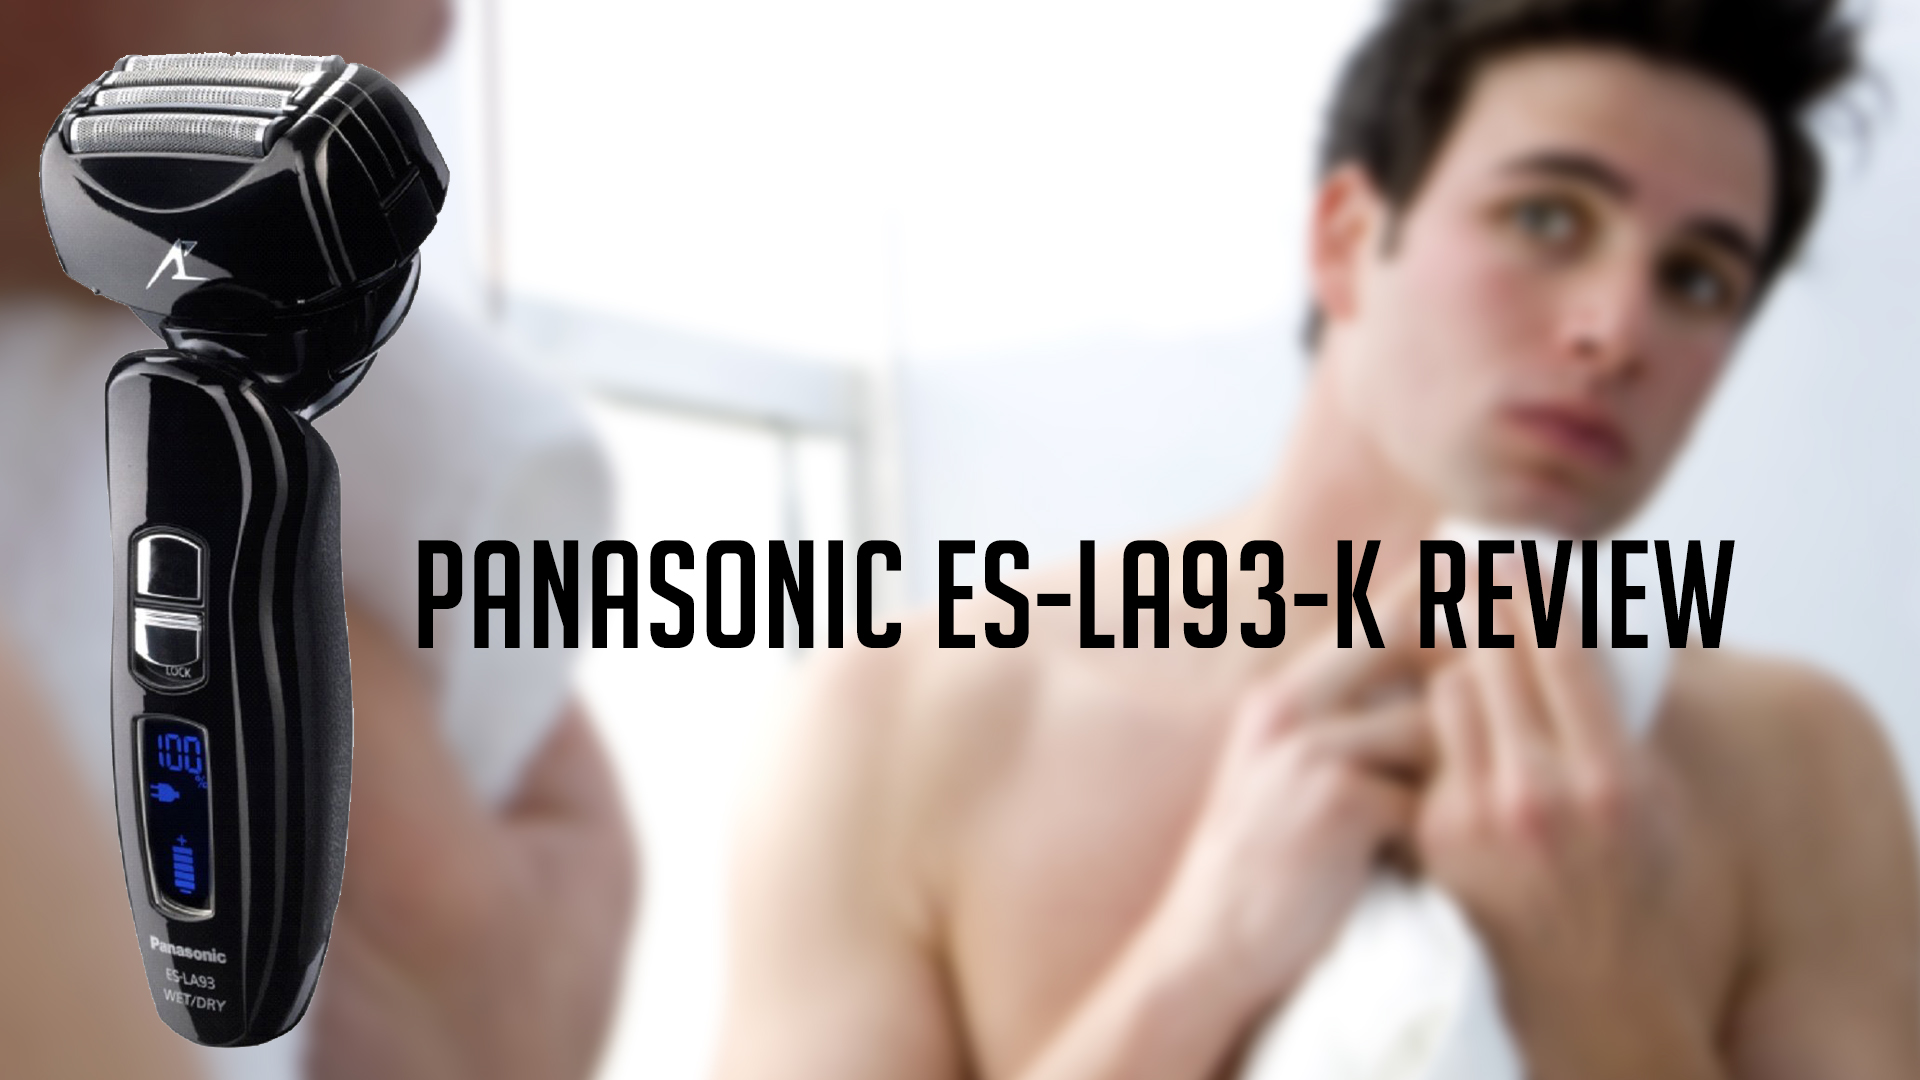 Panasonic ES-LA93-K Arc 4 Review